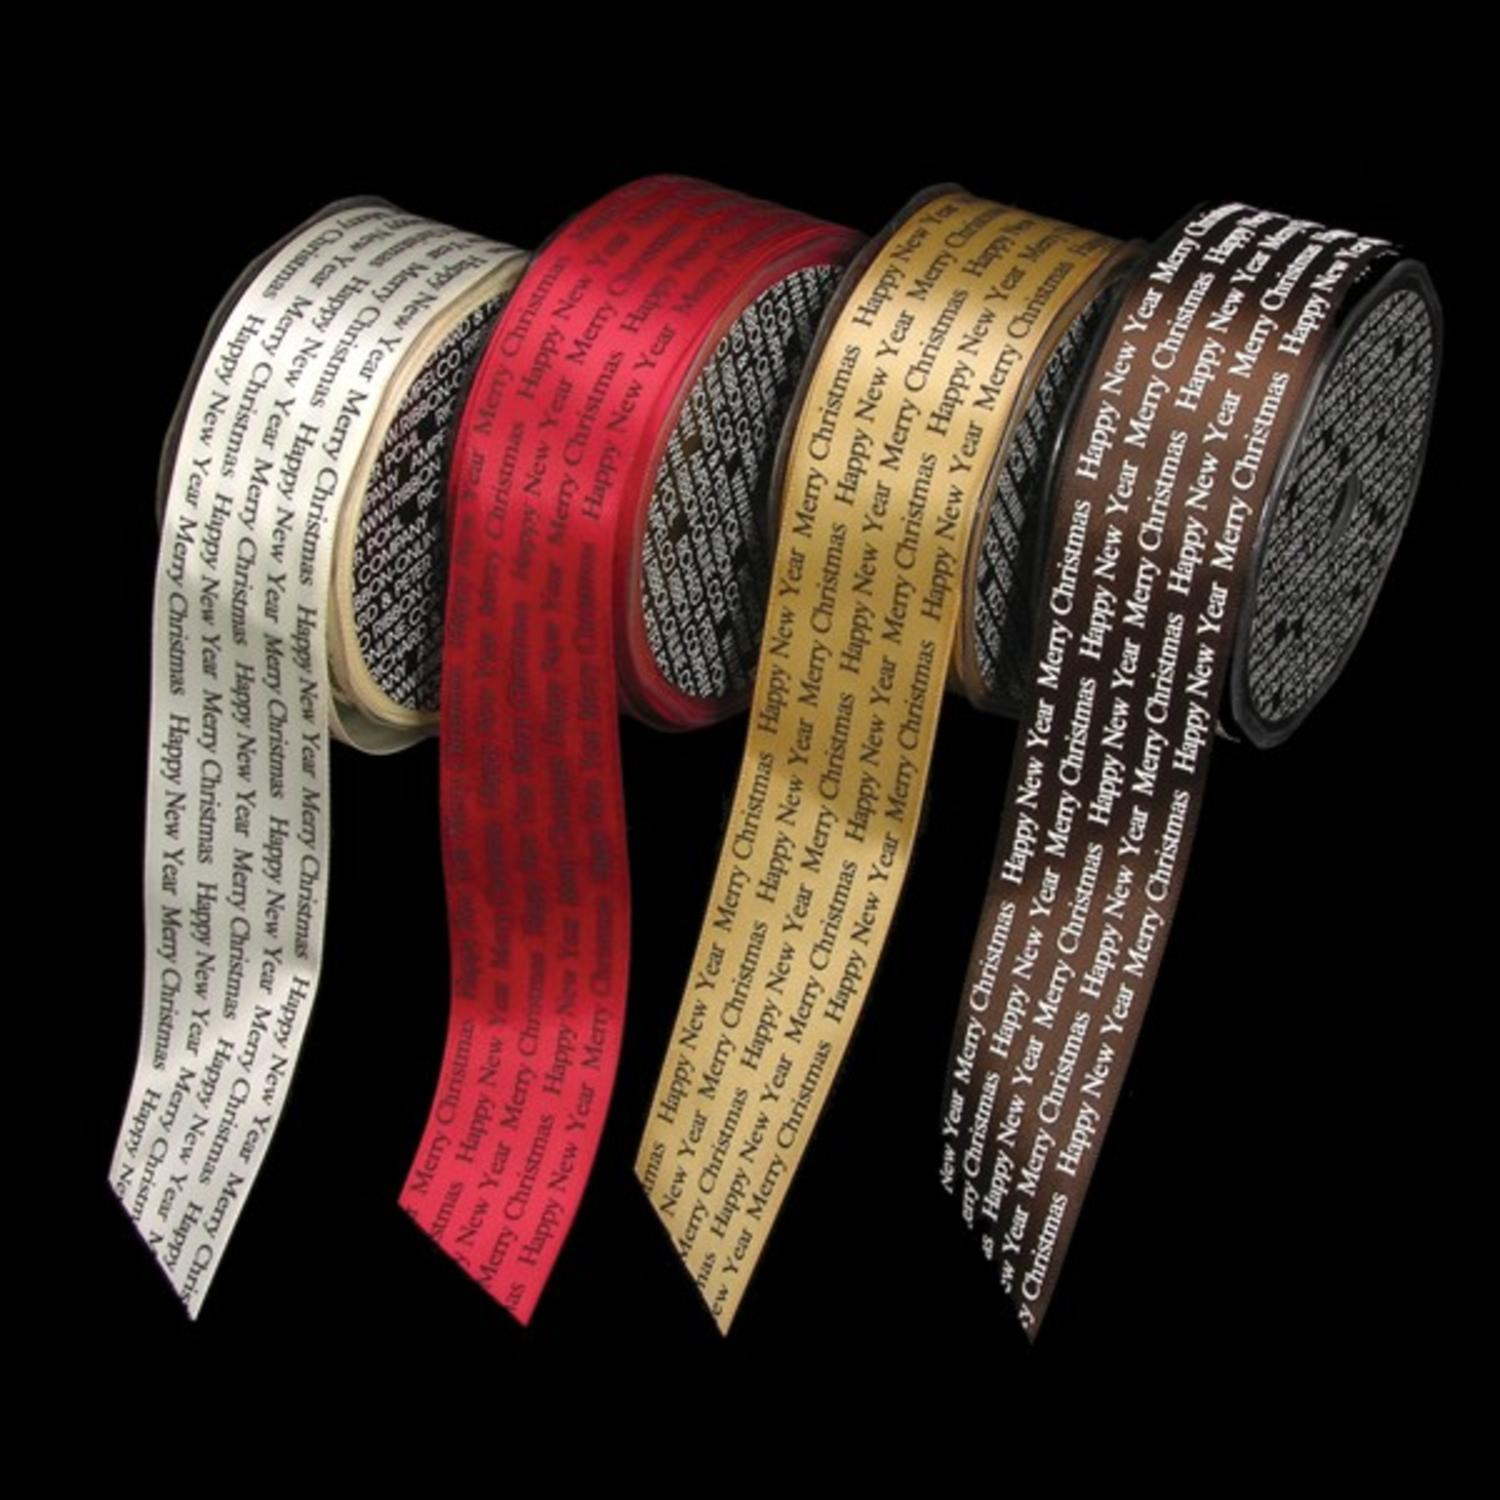 """Brown Merry Christmas and Happy New Year Print Satin Wired Craft Ribbon 1.5"""" x 54 Yards"""